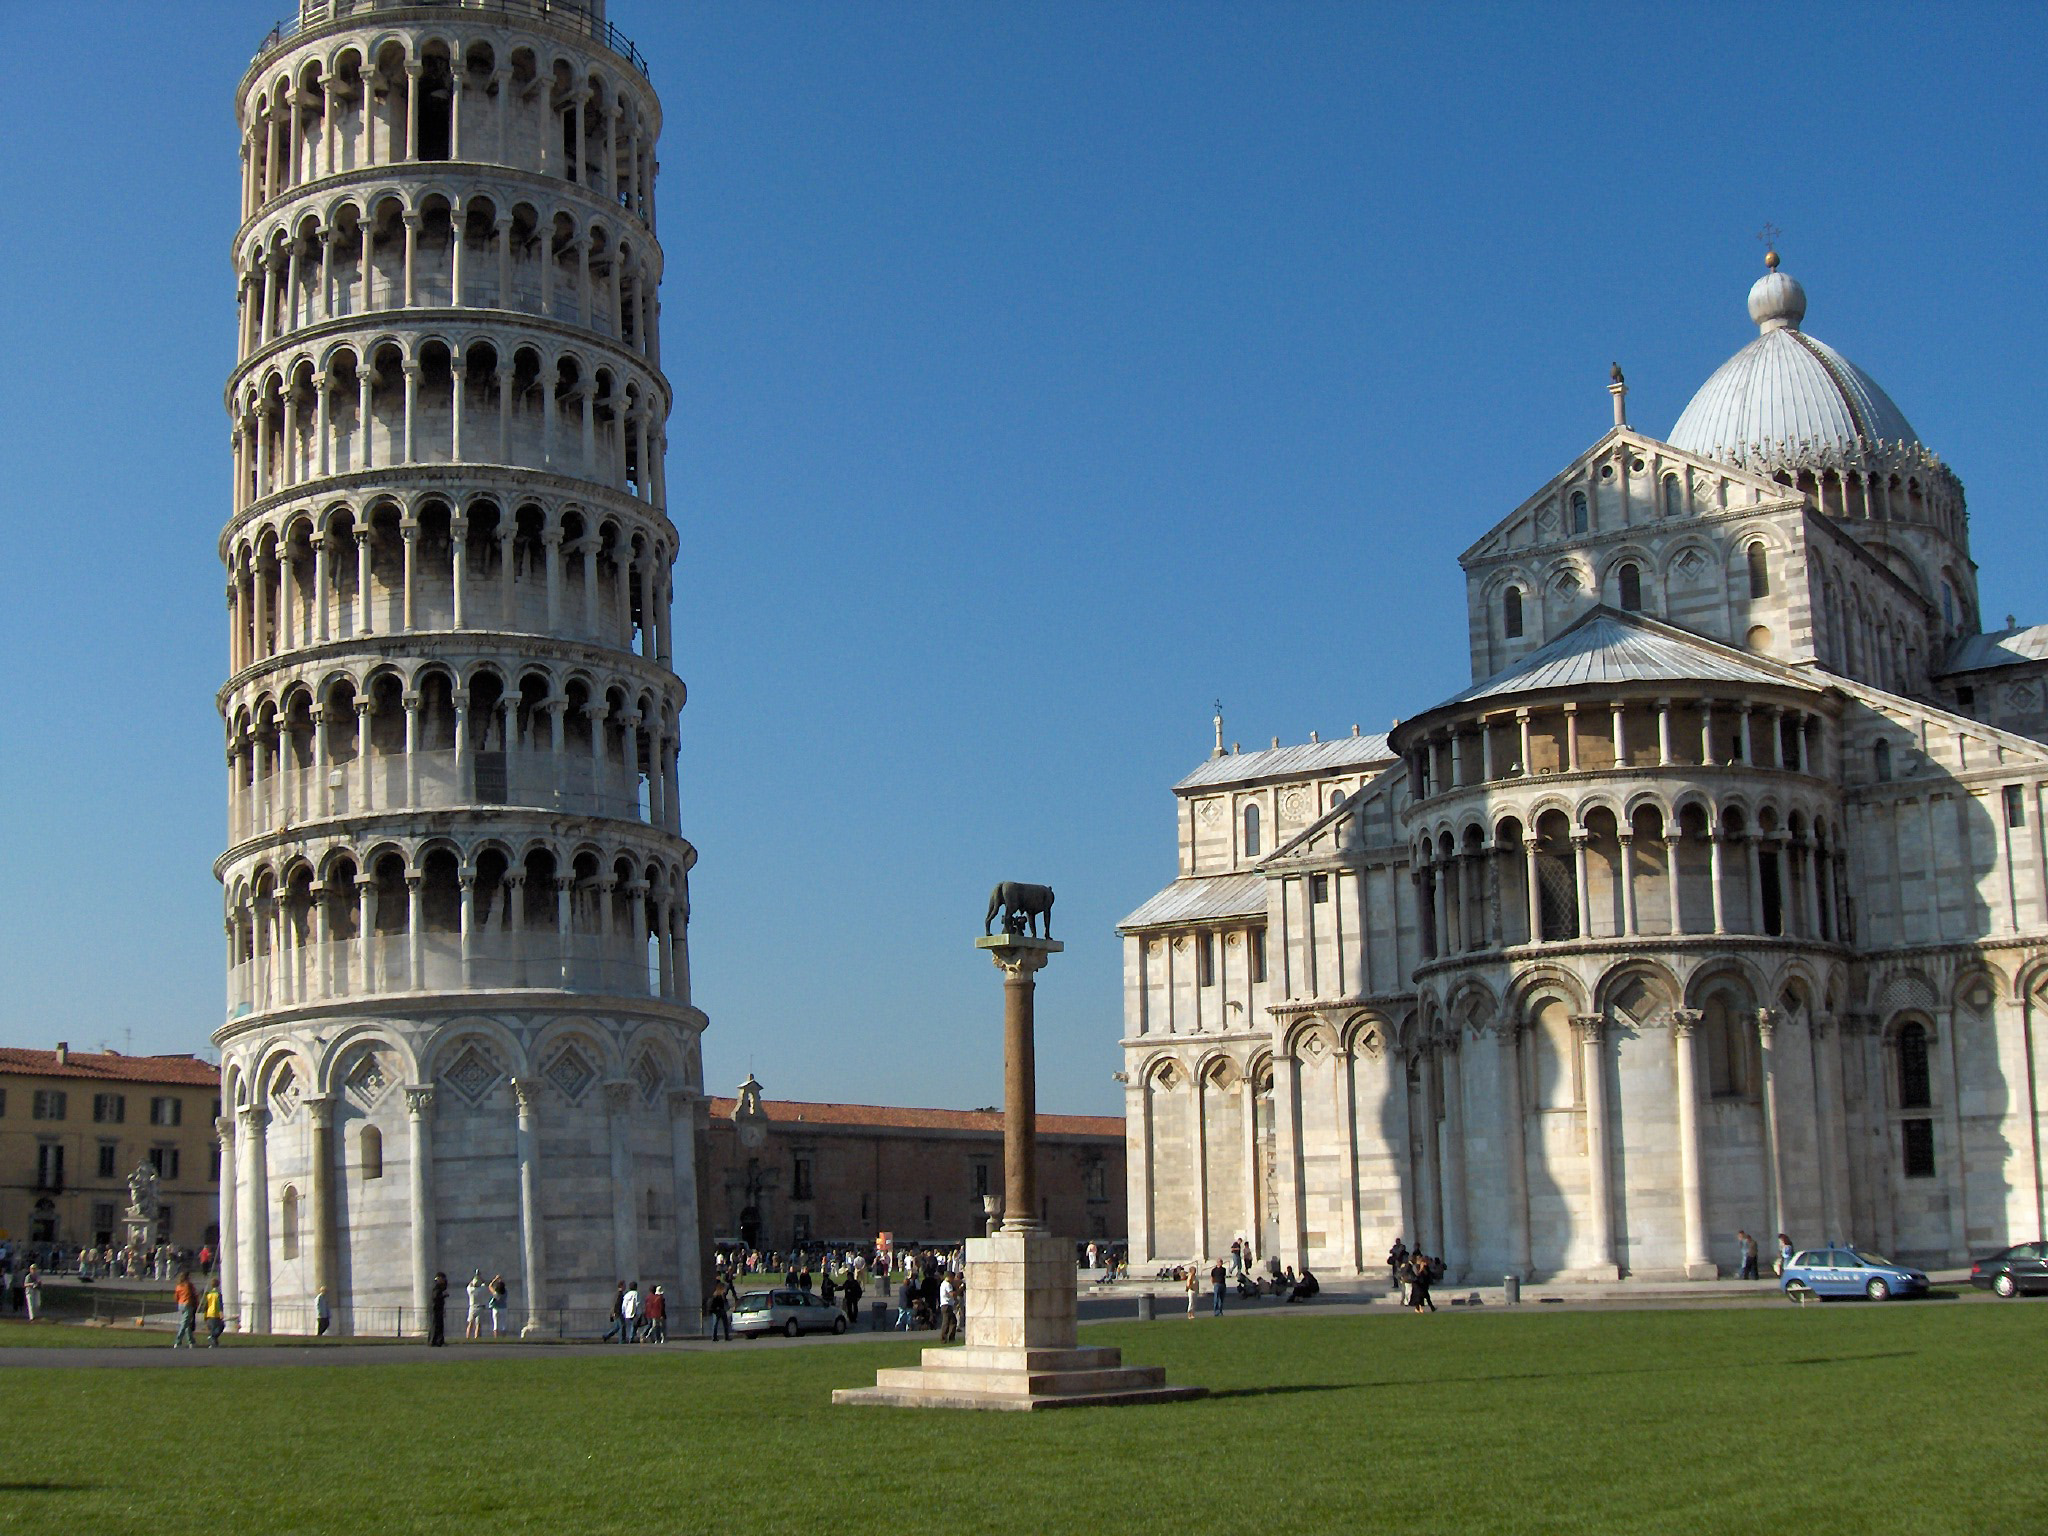 pisa italy Pisa italy landmarks, tourist attractions, museums, galleries, parks, gardens, maps, weather, hotels, shopping, airport and train information.